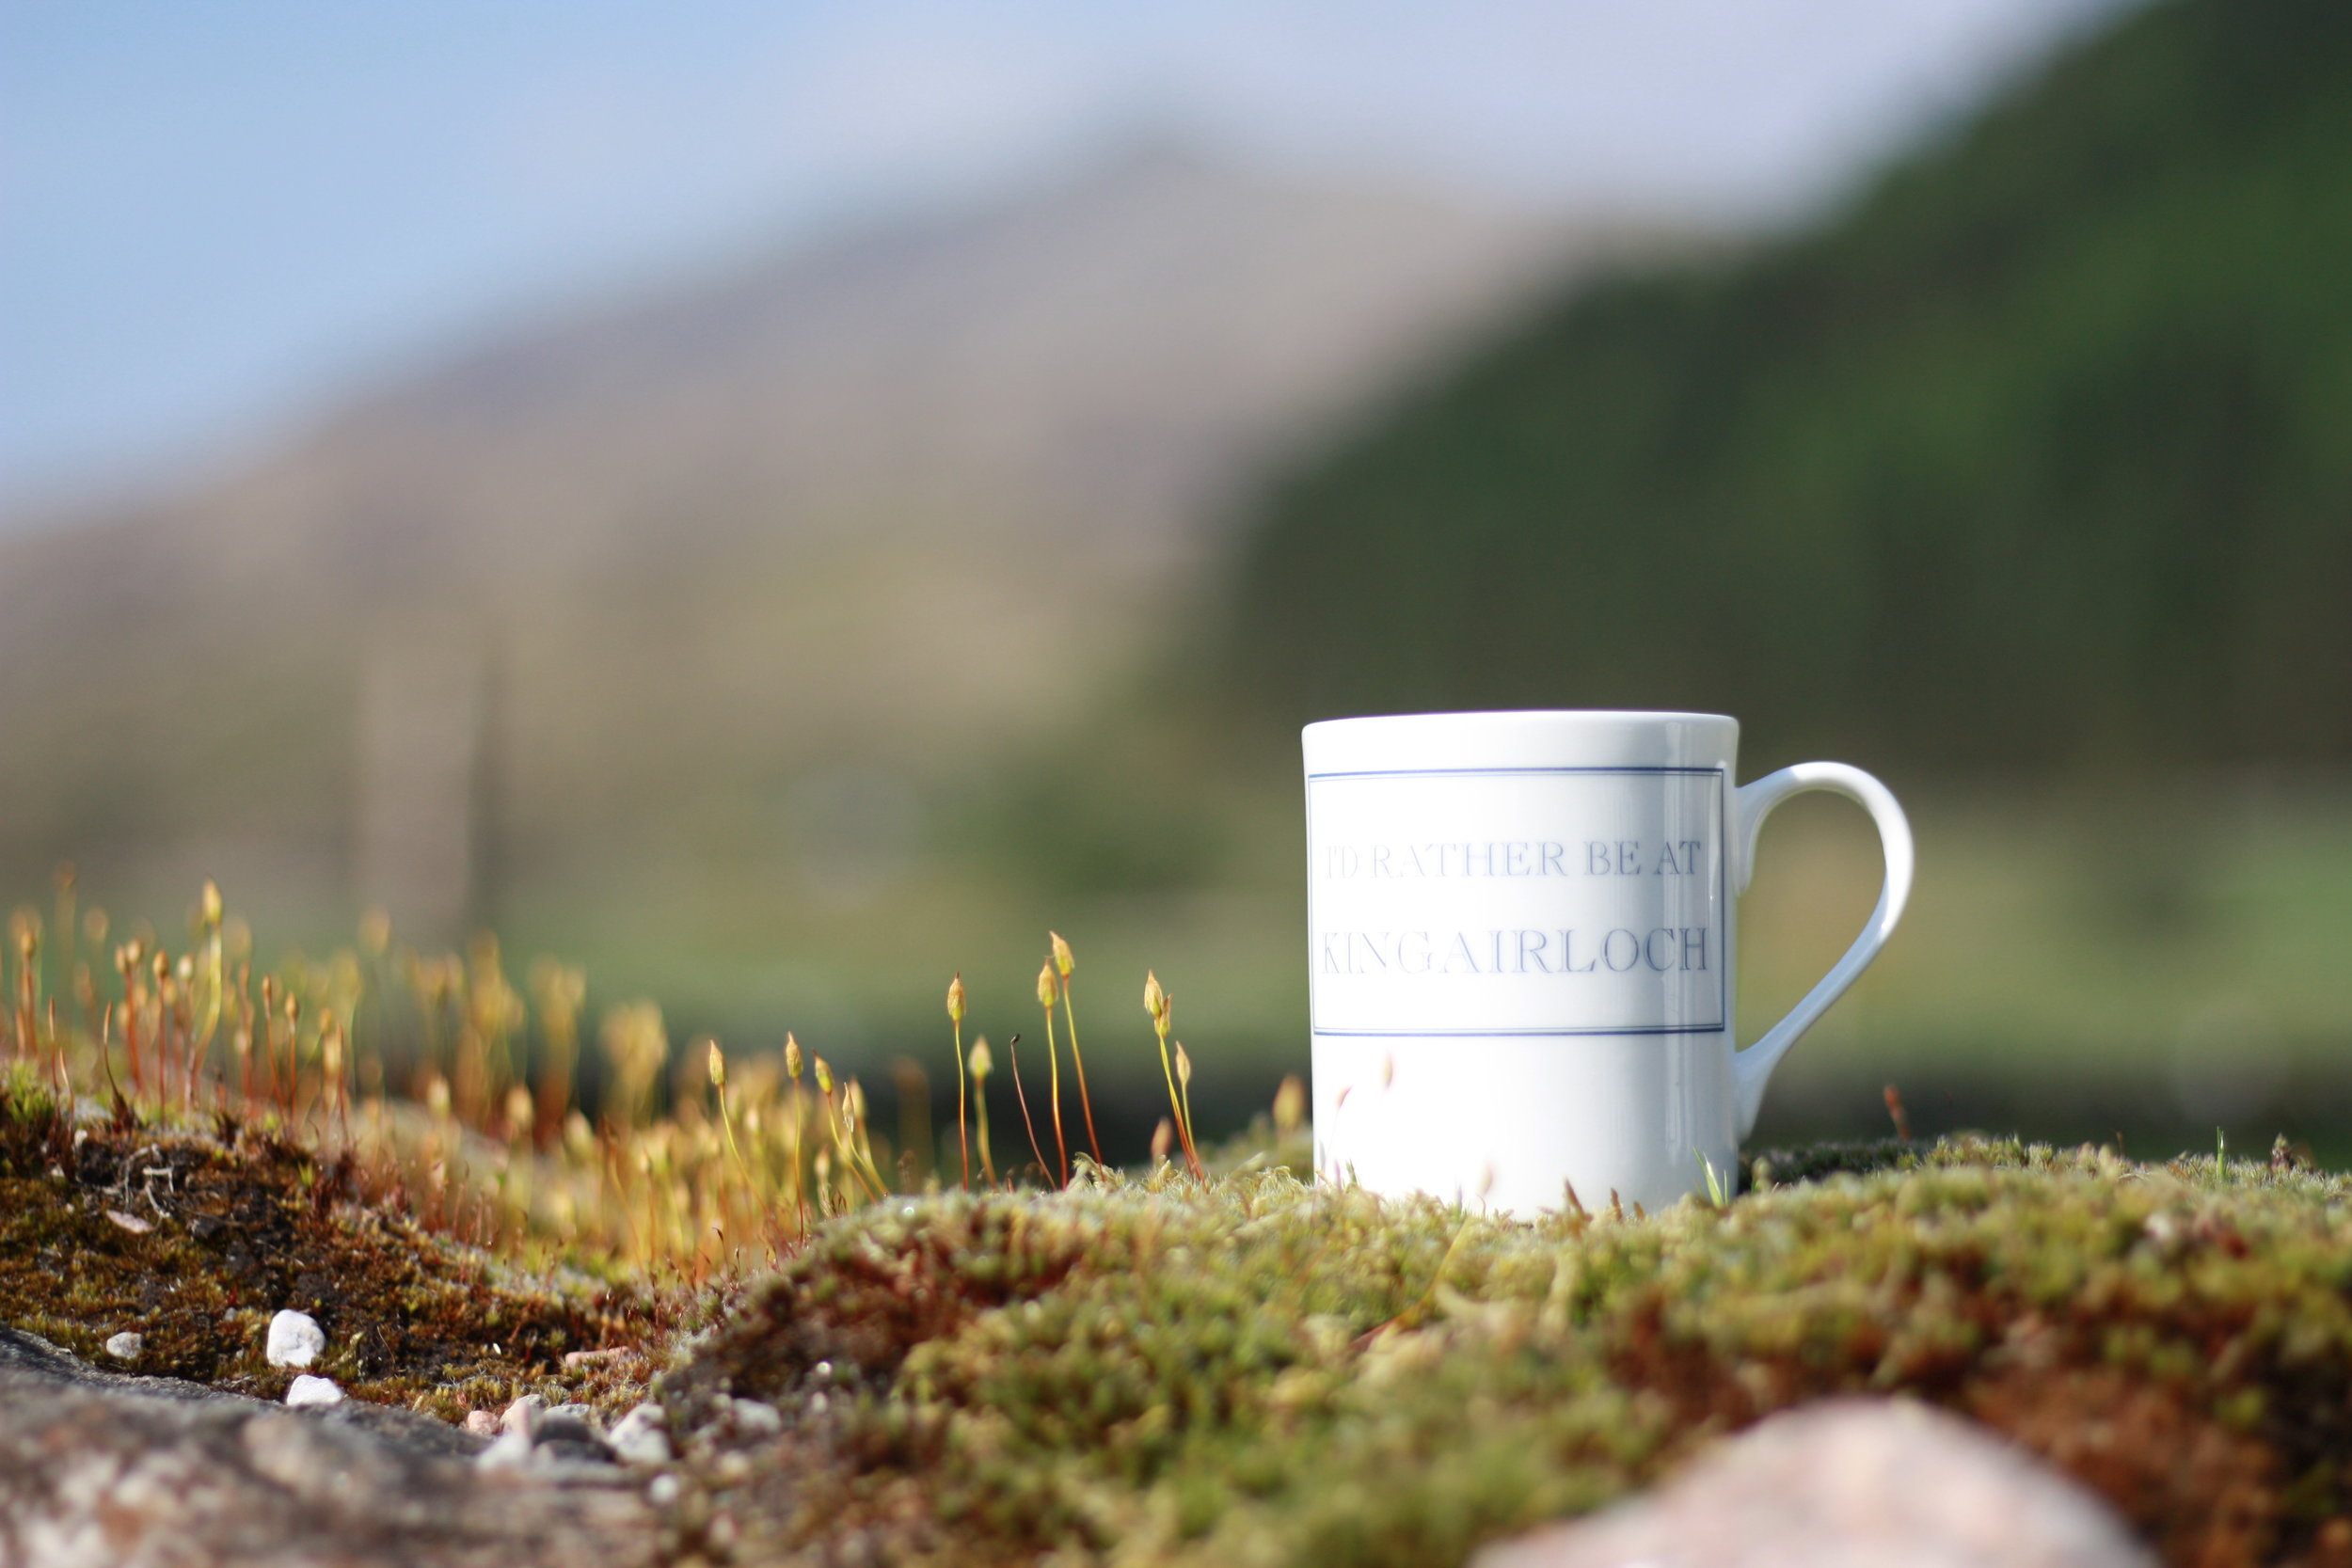 The Steadings has cute mugs that say 'I'd rather be at Kingairloch'. Obvi I bought one.